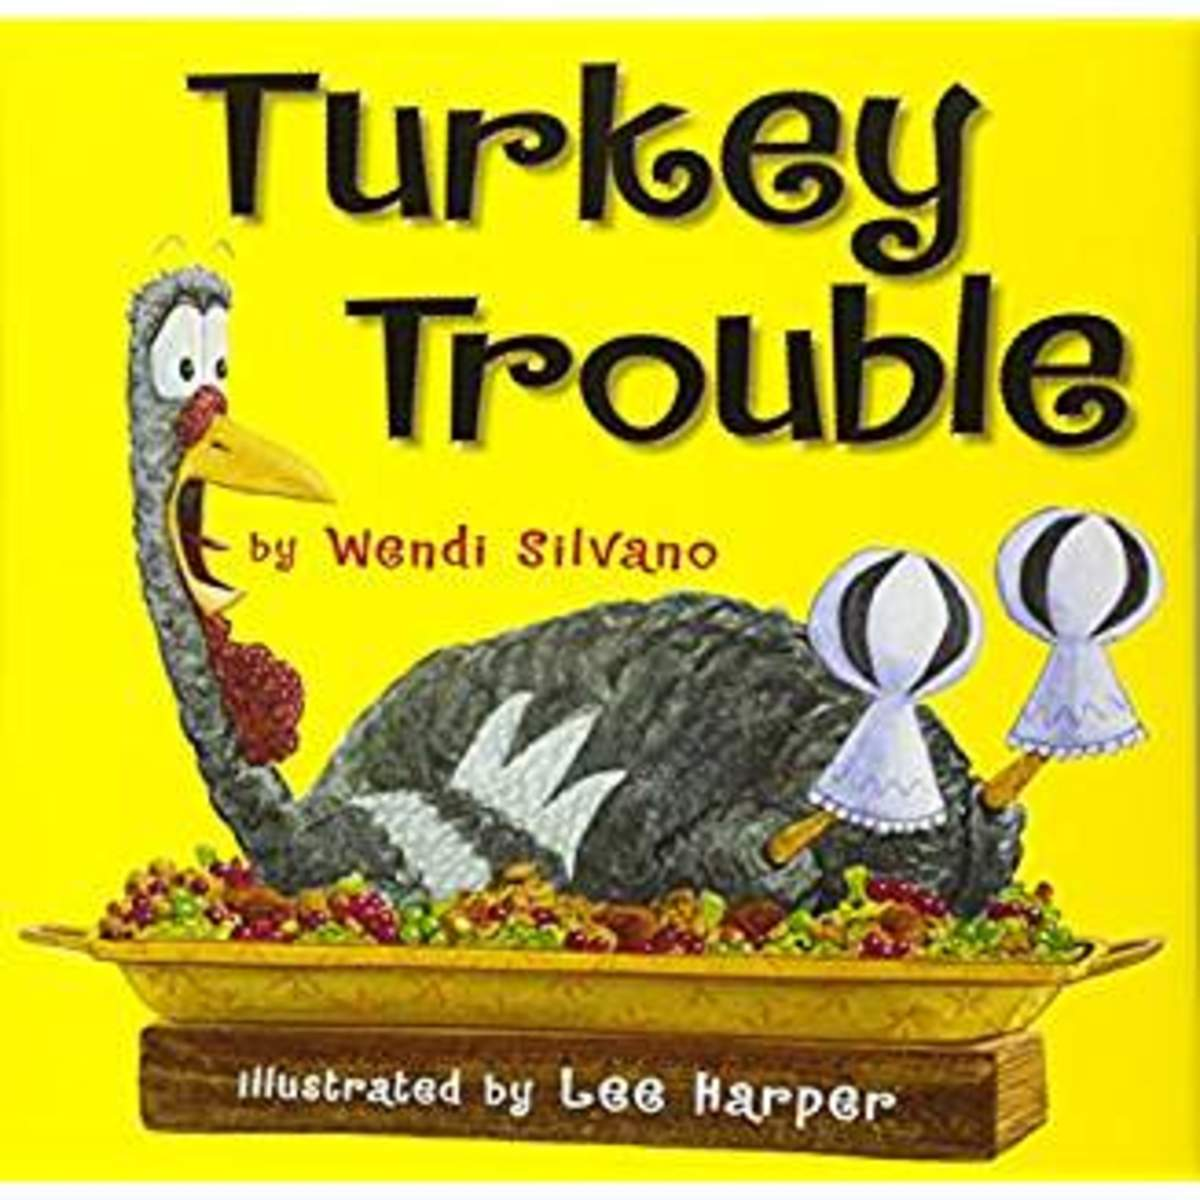 Turkey Trouble by Wendy Silvano